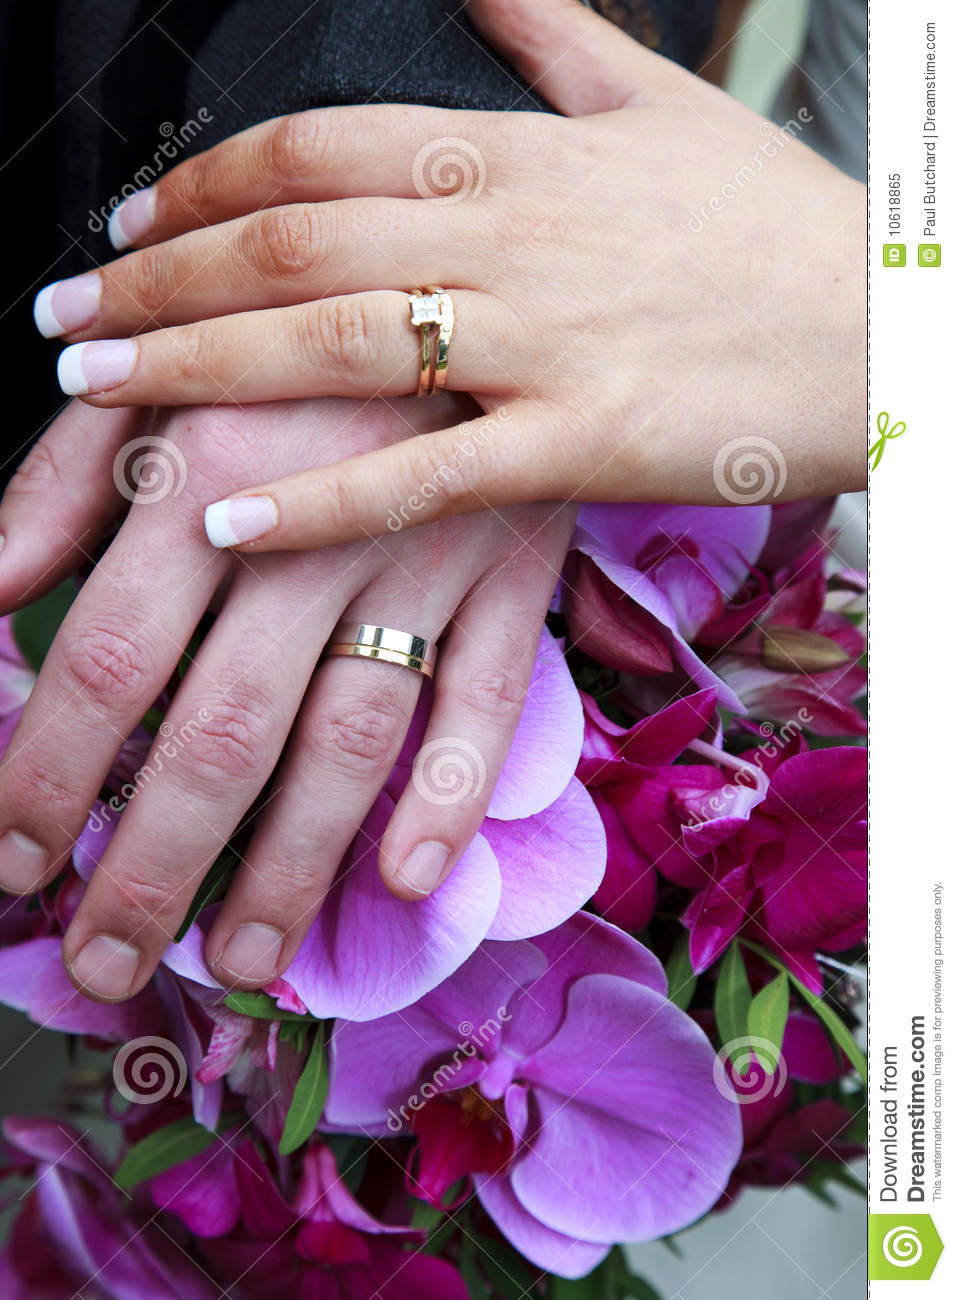 silicone saferingz stretch wedding features original rubber band pregnancy and platinum metallic ring rings